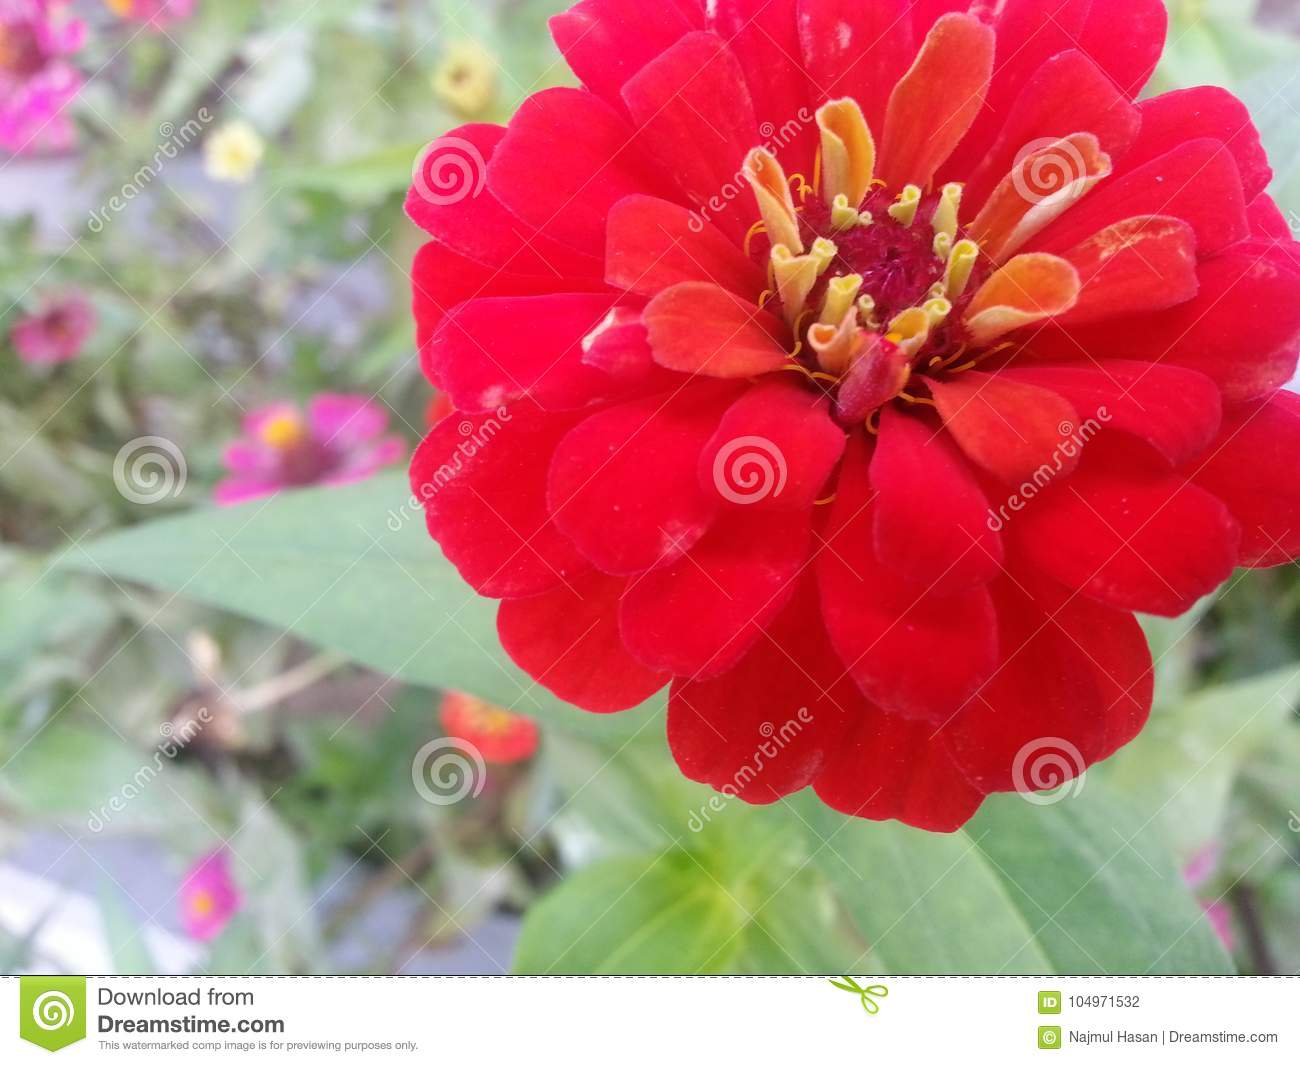 Red Flower With Yellow Stamens And Green Leaves Stock Photo Image